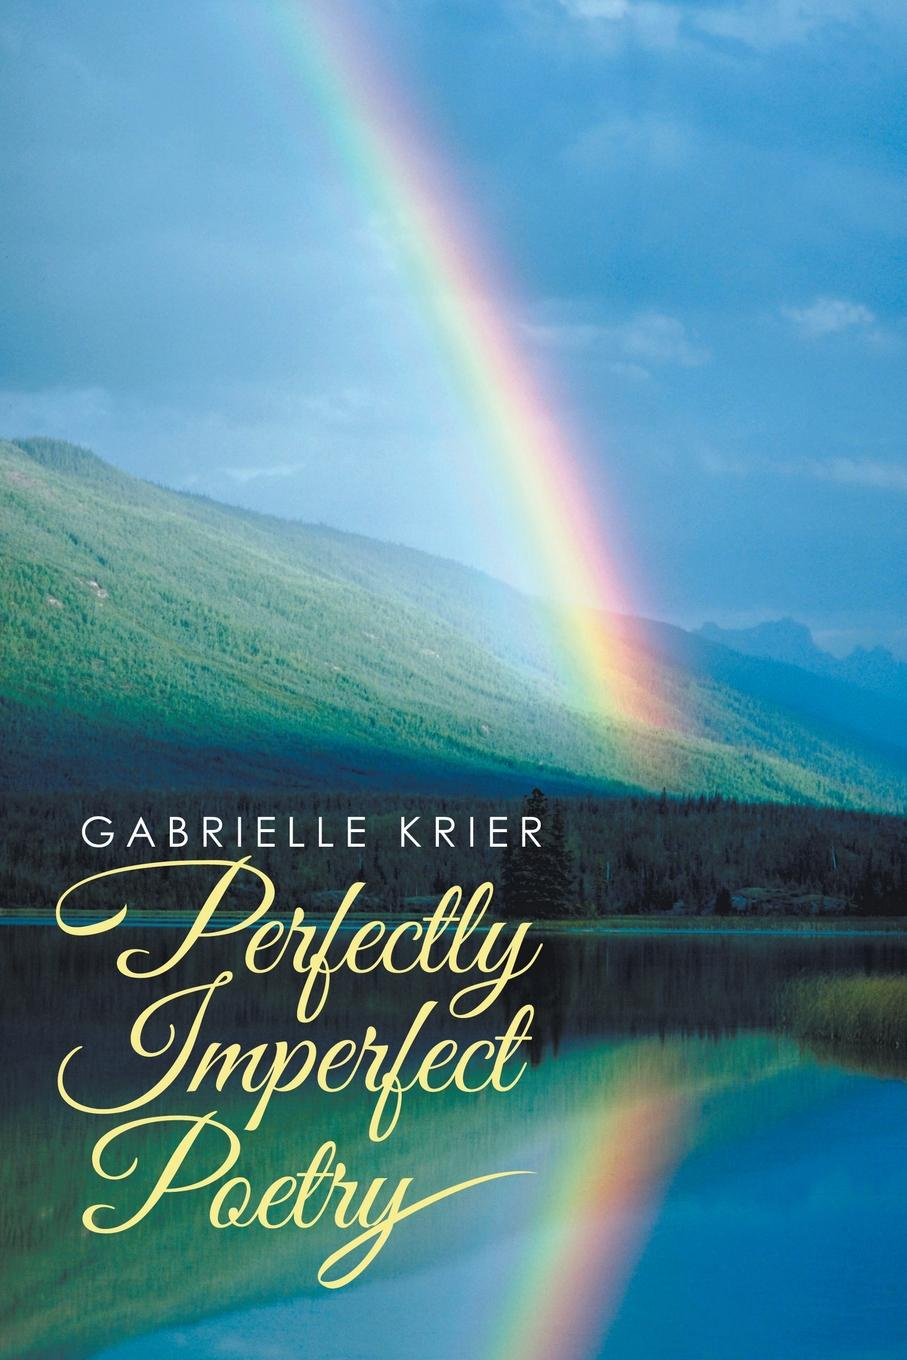 Gabrielle Krier Perfectly Imperfect Poetry imperfect philosophy туфли